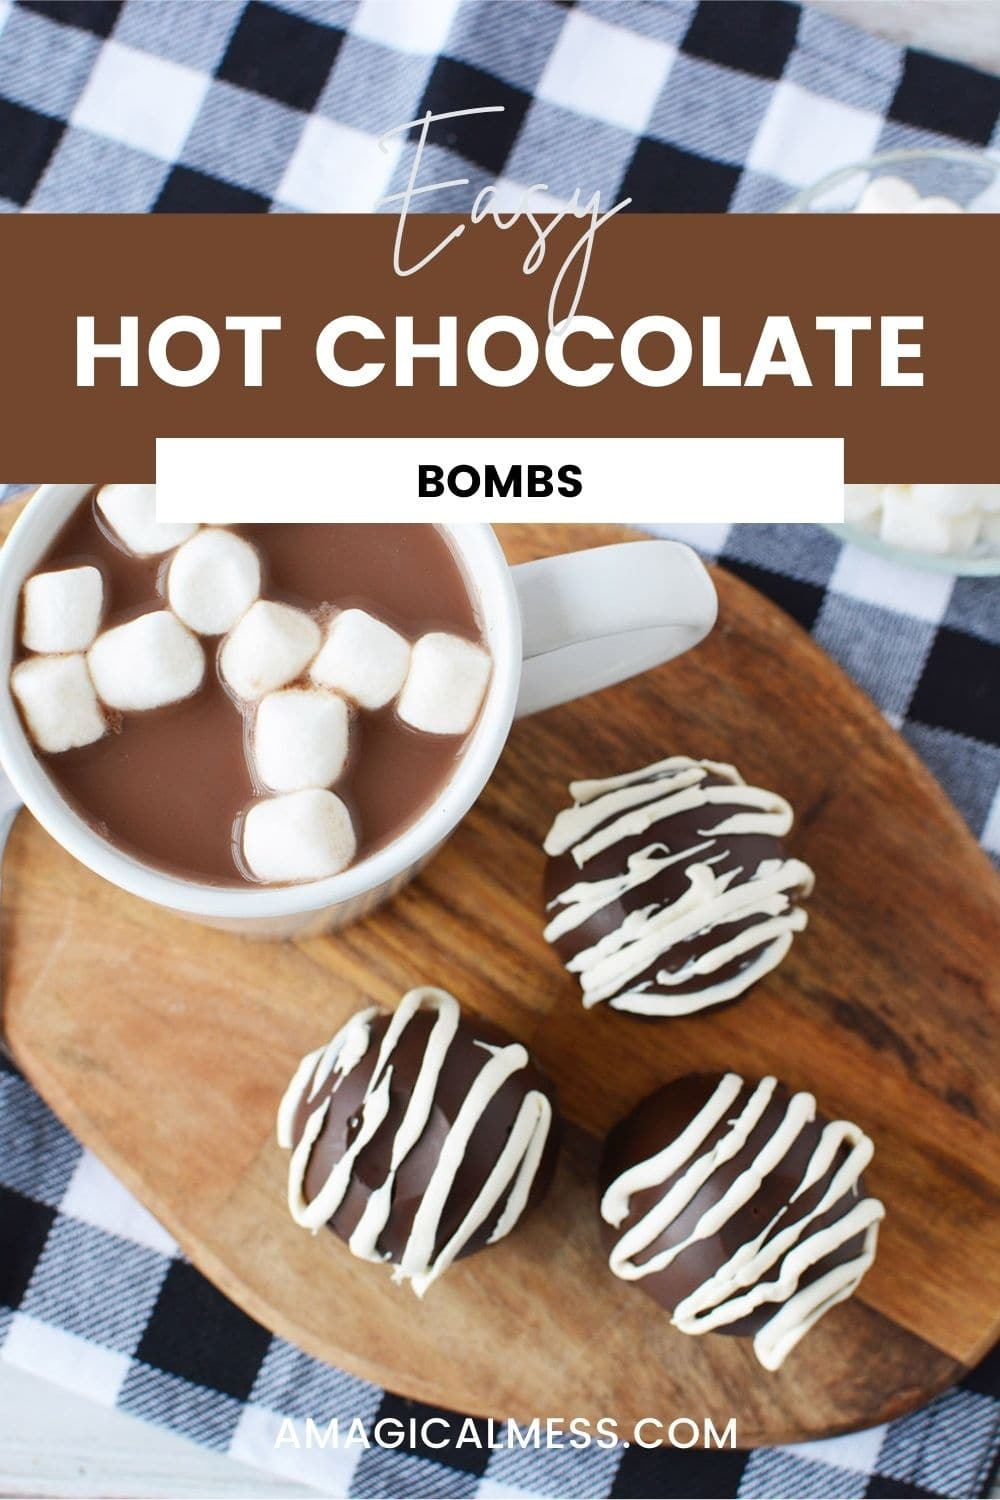 Hot chocolate bombs next to a mug of hot chocolate with marshmallows.